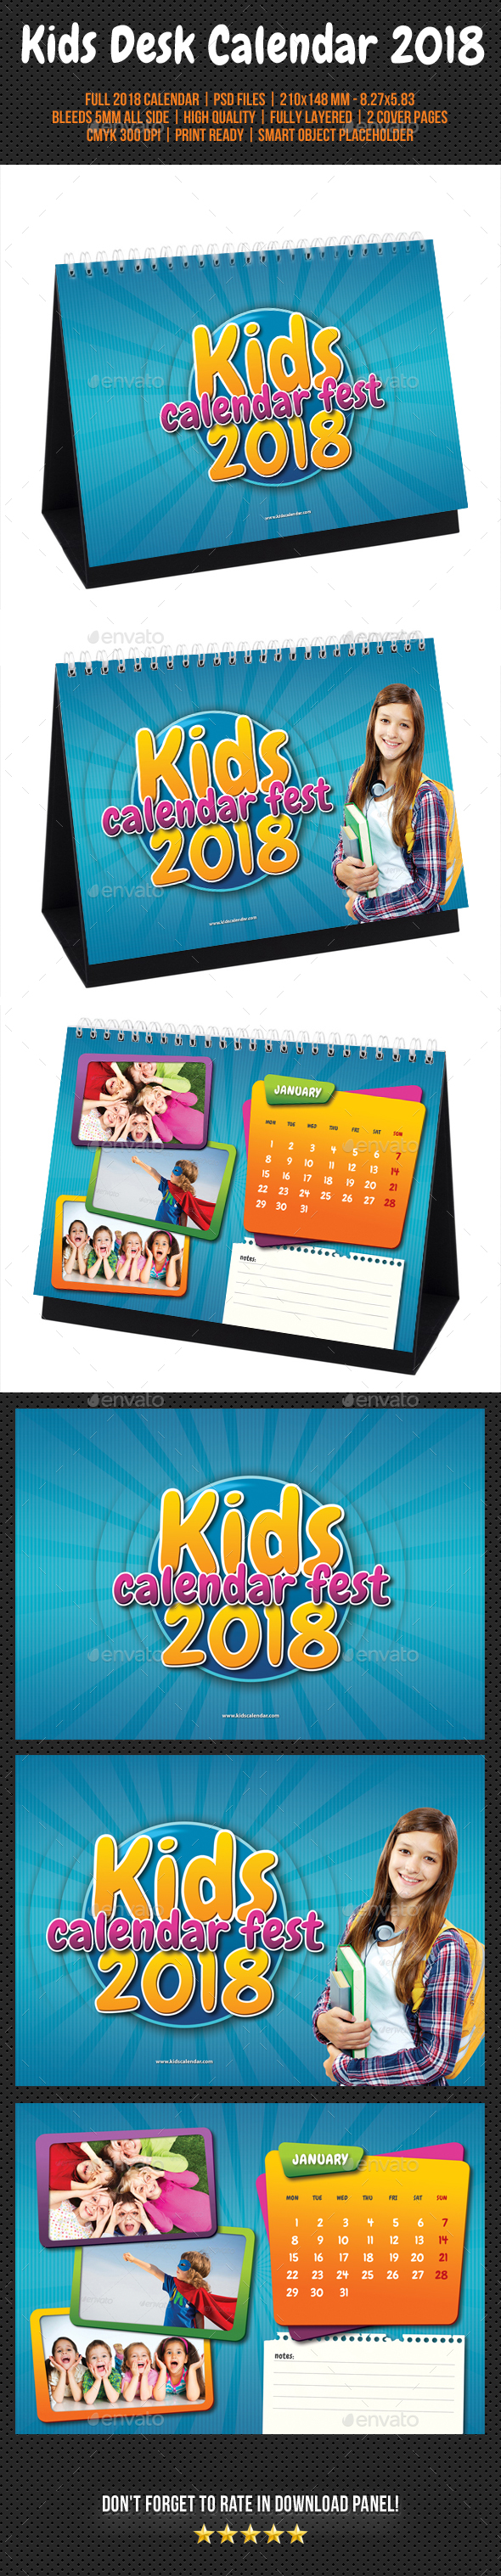 Kids Desk Calendar : Kids desk calendar by rapidgraf graphicriver